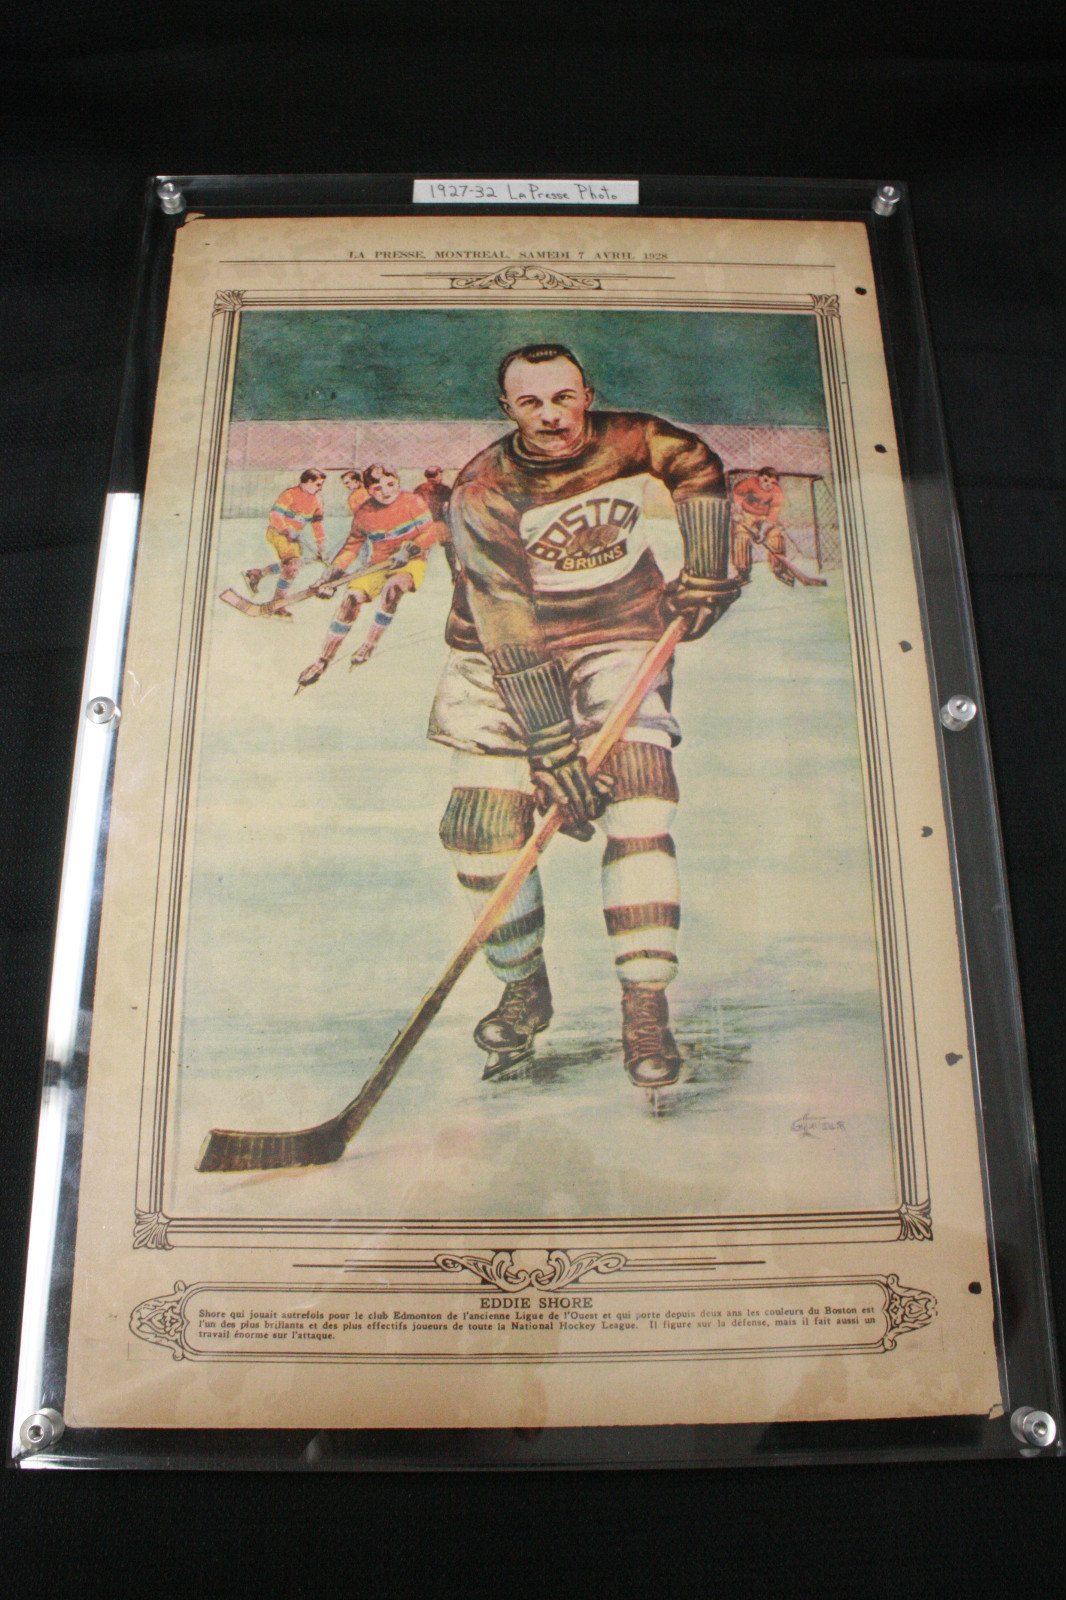 Eddie Shore - Boston Bruins - La Presse Newspaper - 1928  30b7cbbaa